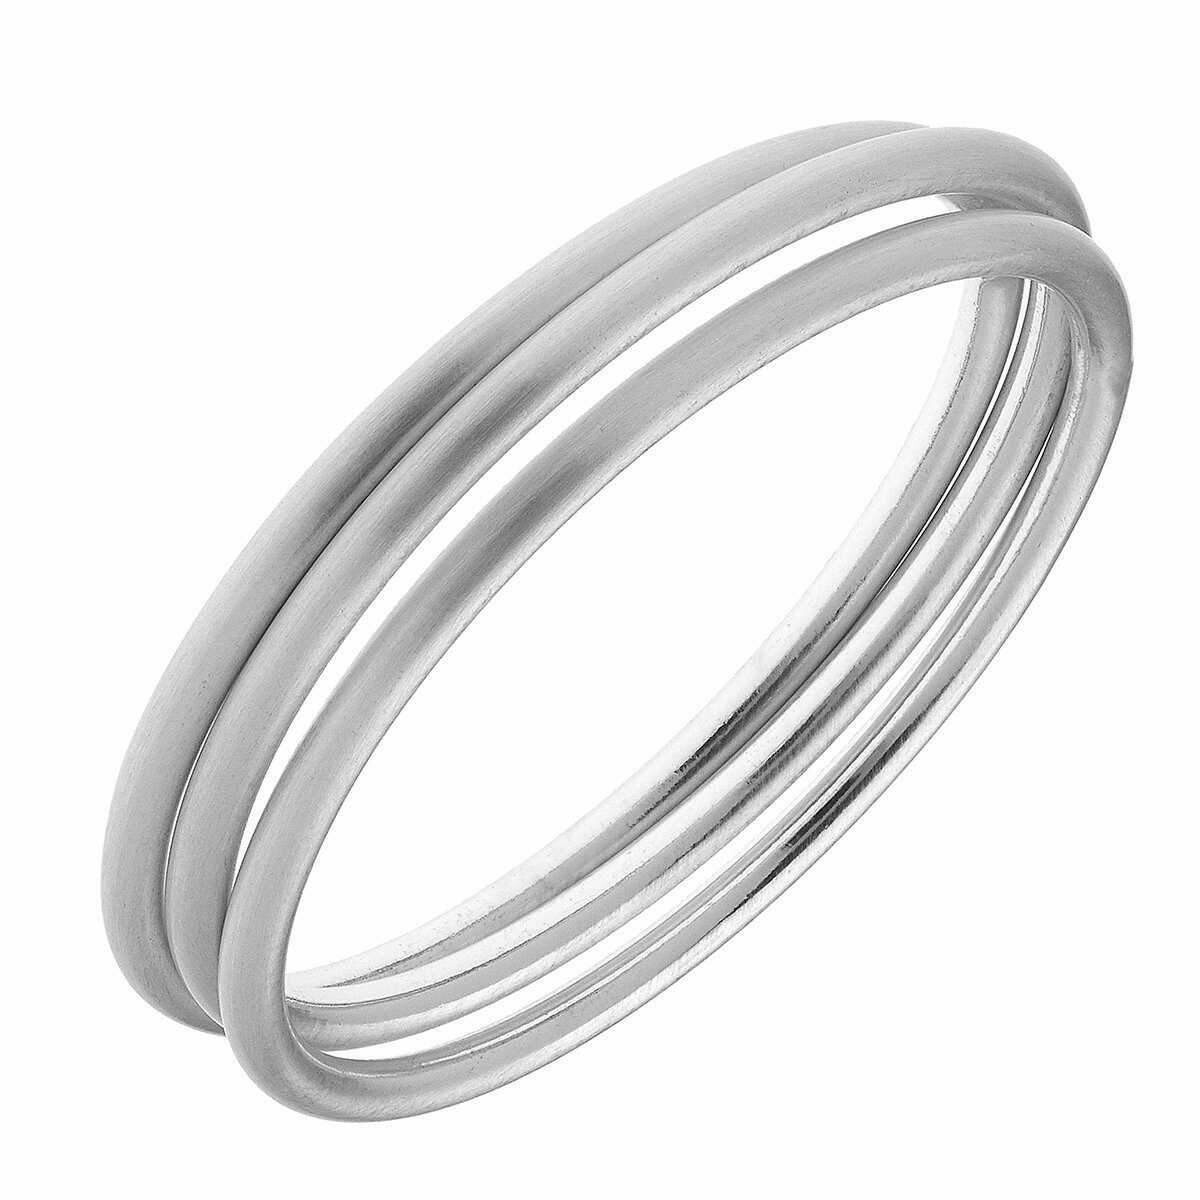 Set of 3 Silver Satin Bangles